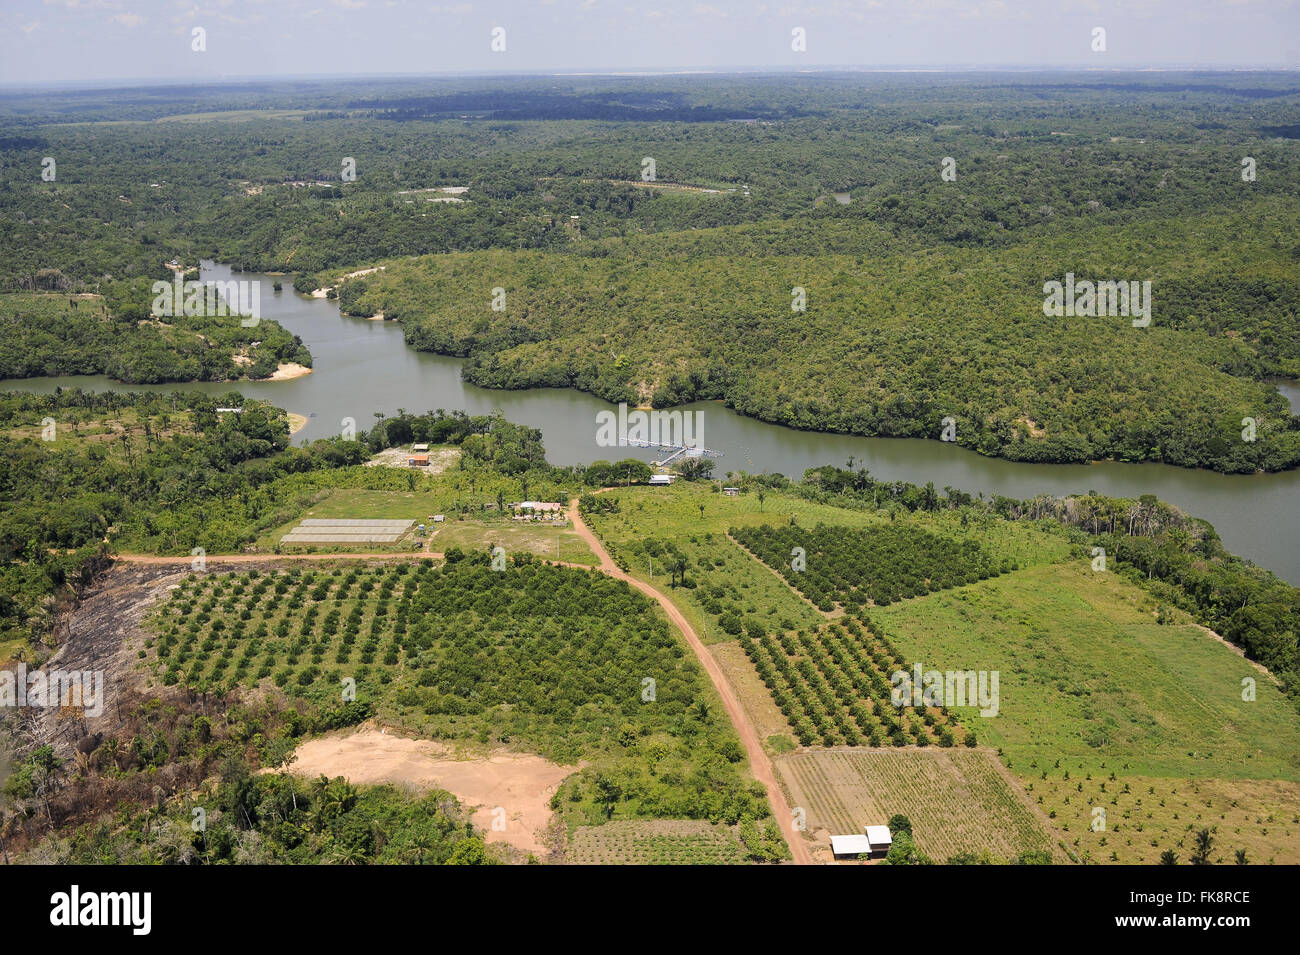 Aerial view of orange groves on the banks of the Rio Negro igarapé - Stock Image